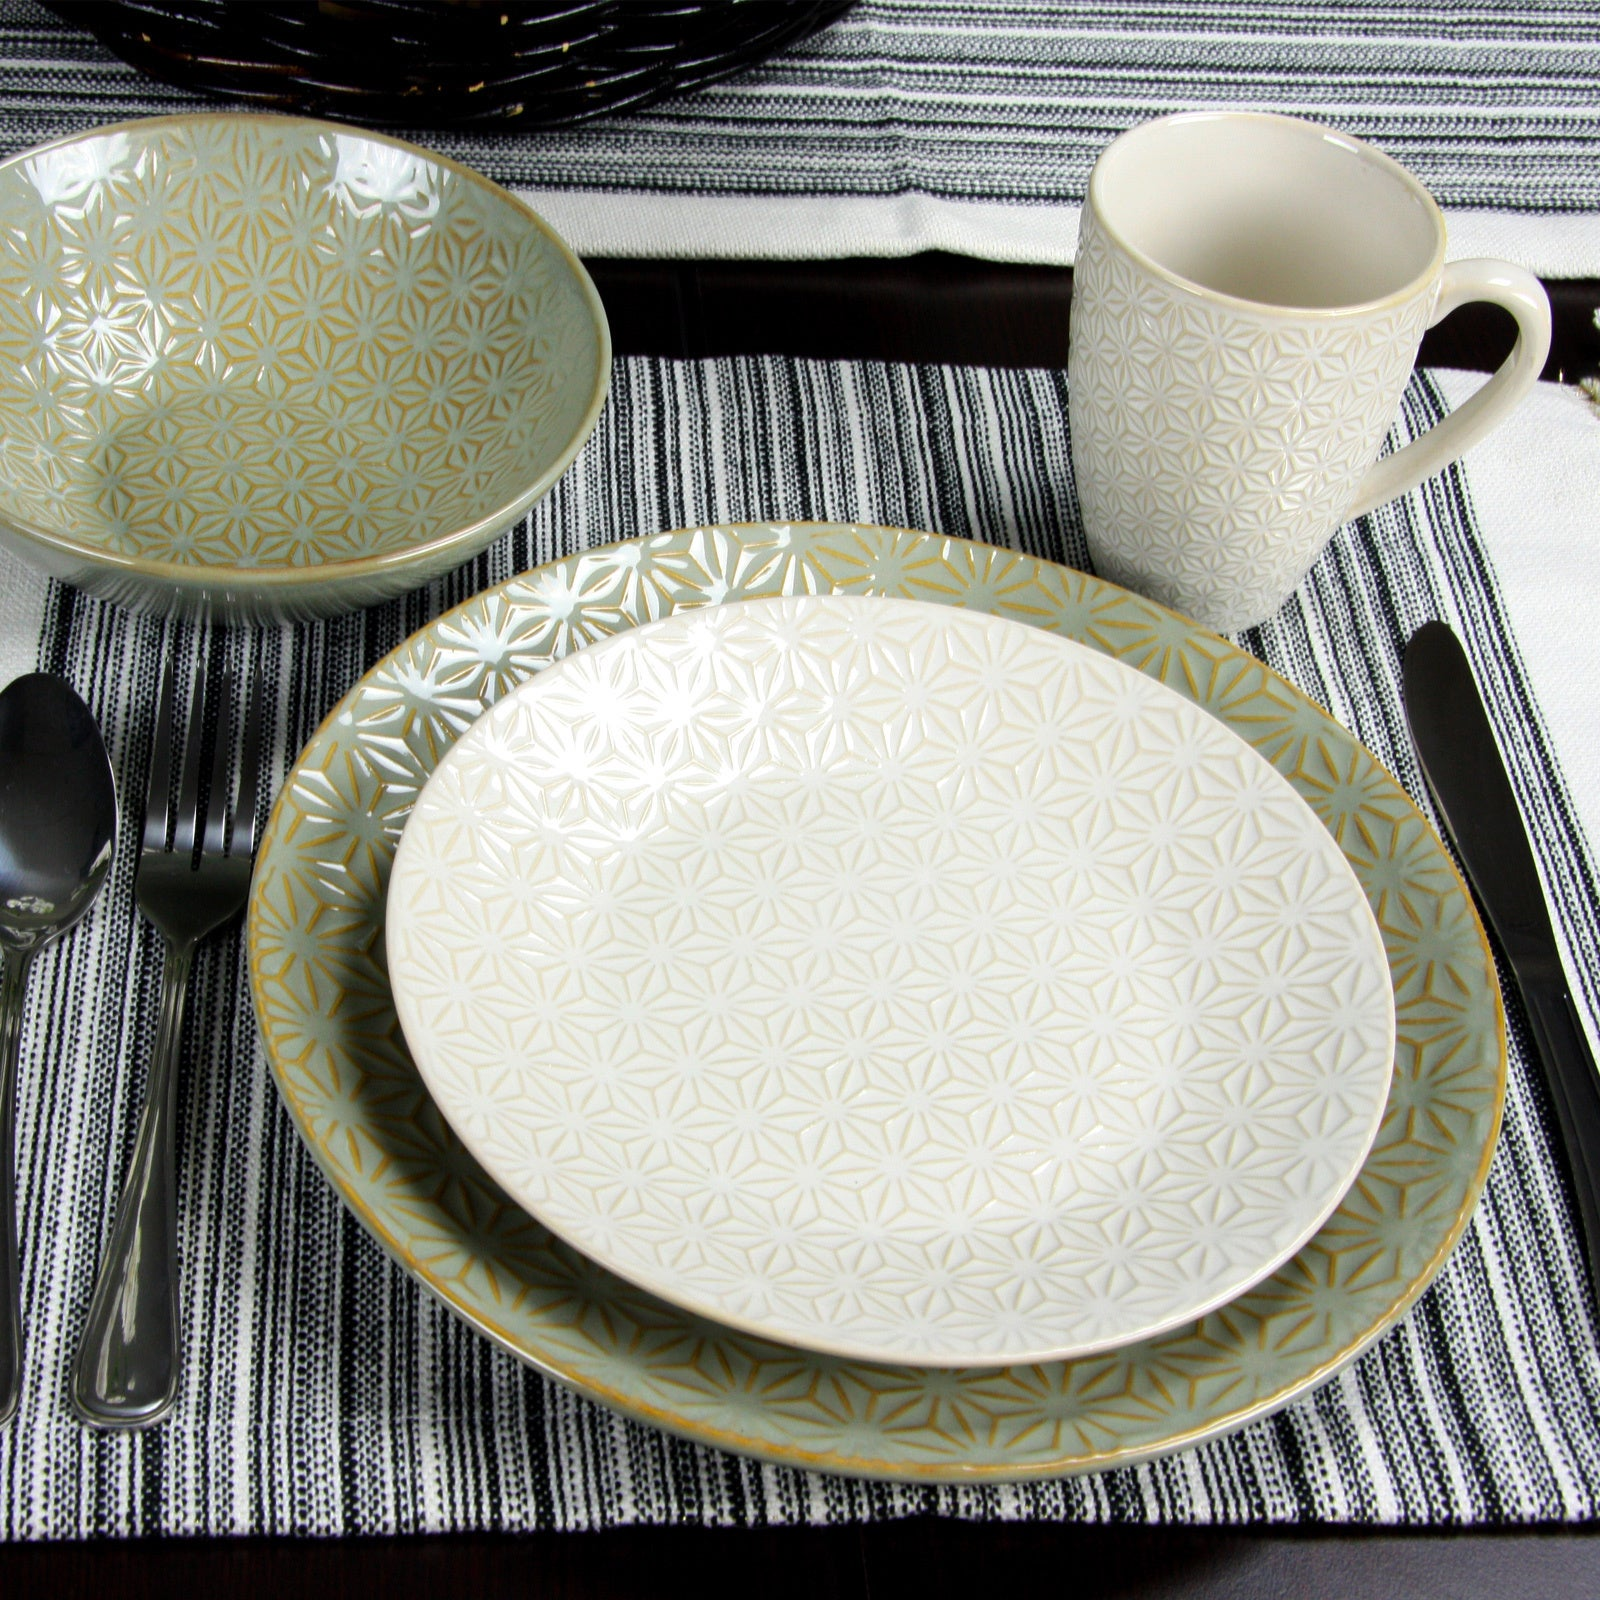 Elama Olive Terrace Ivory/Green Stoneware Service for 4 Textured Dinnerware Set (Case of 16) - Free Shipping Today - Overstock.com - 19656153 & Elama Olive Terrace Ivory/Green Stoneware Service for 4 Textured ...